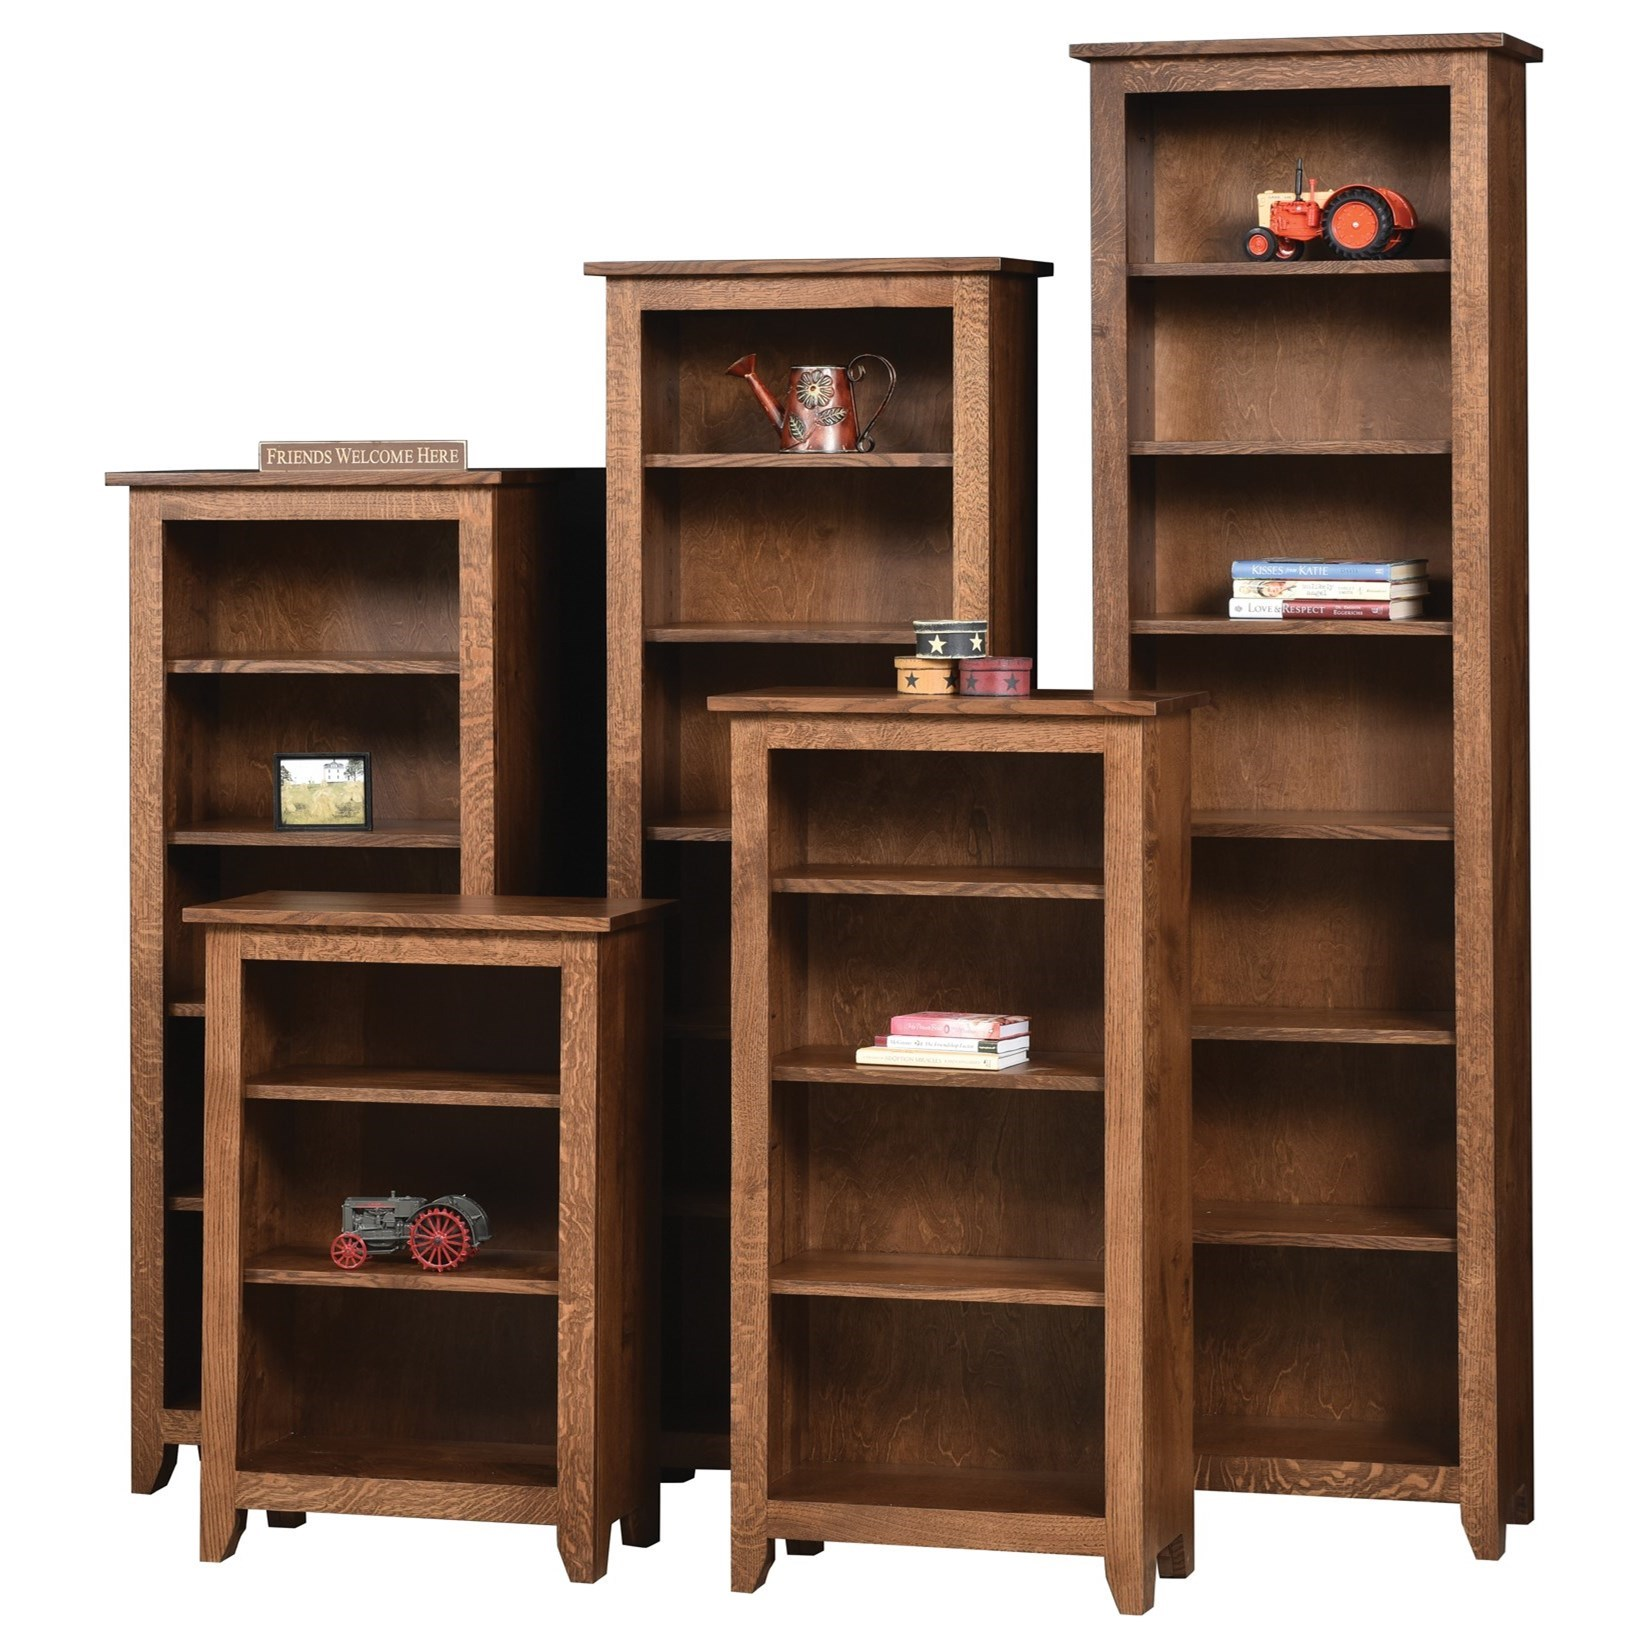 Modern Mission Customizable  Bookcase - Choose Your Size by Ashery Oak at Saugerties Furniture Mart